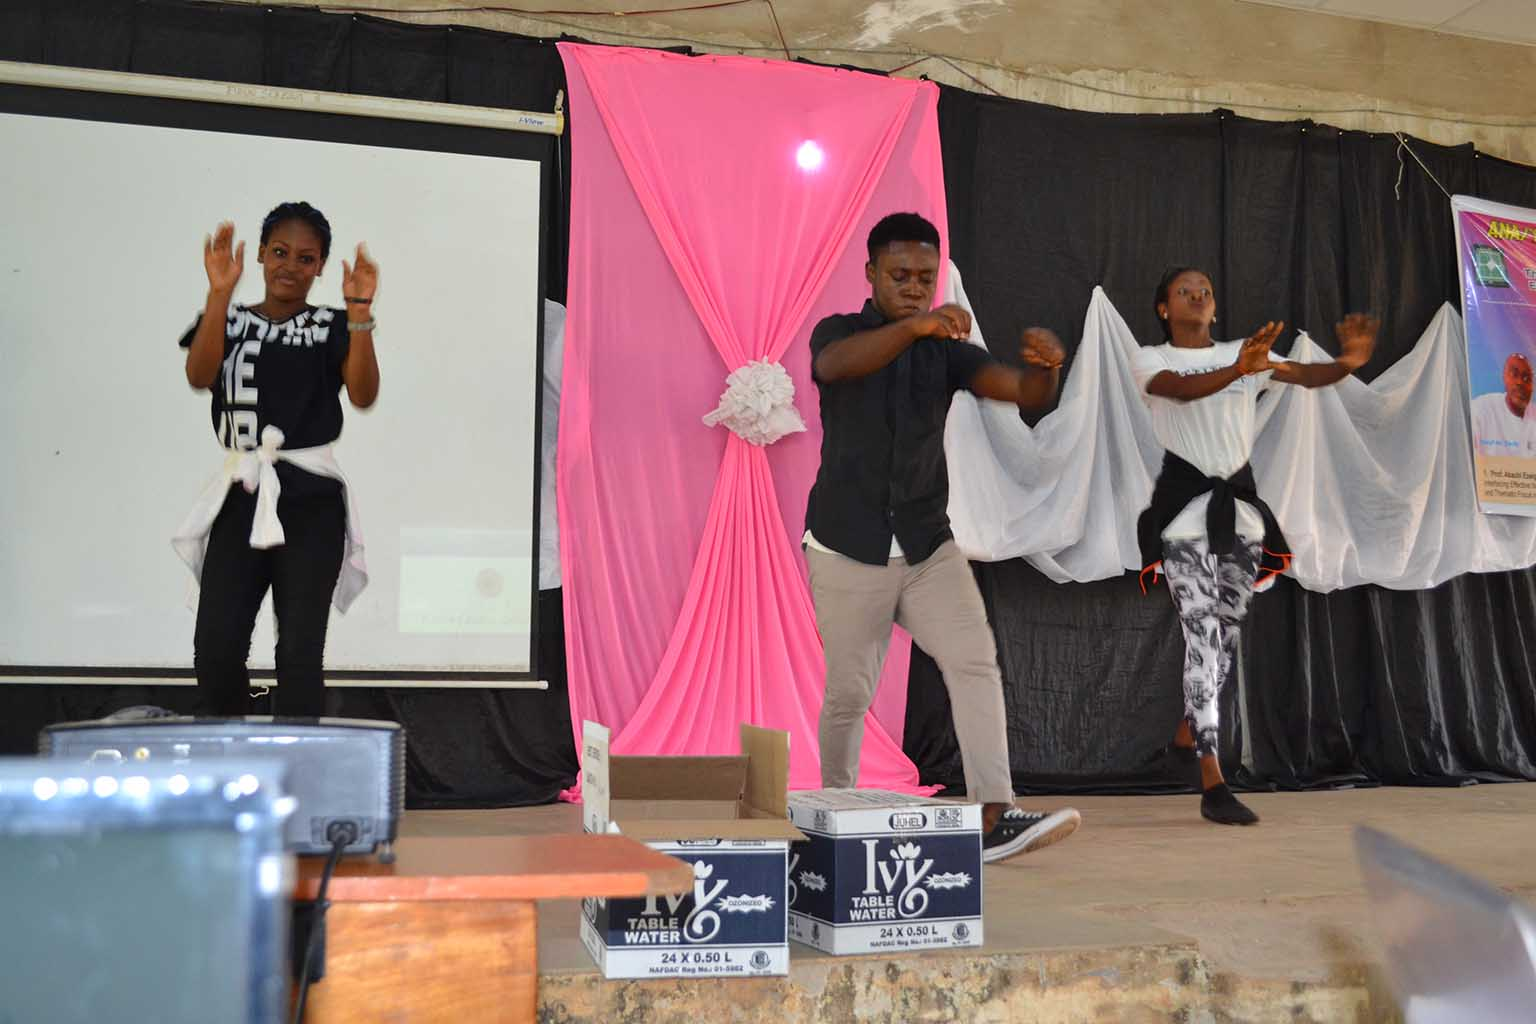 Student-dancers, entertaining people at the event